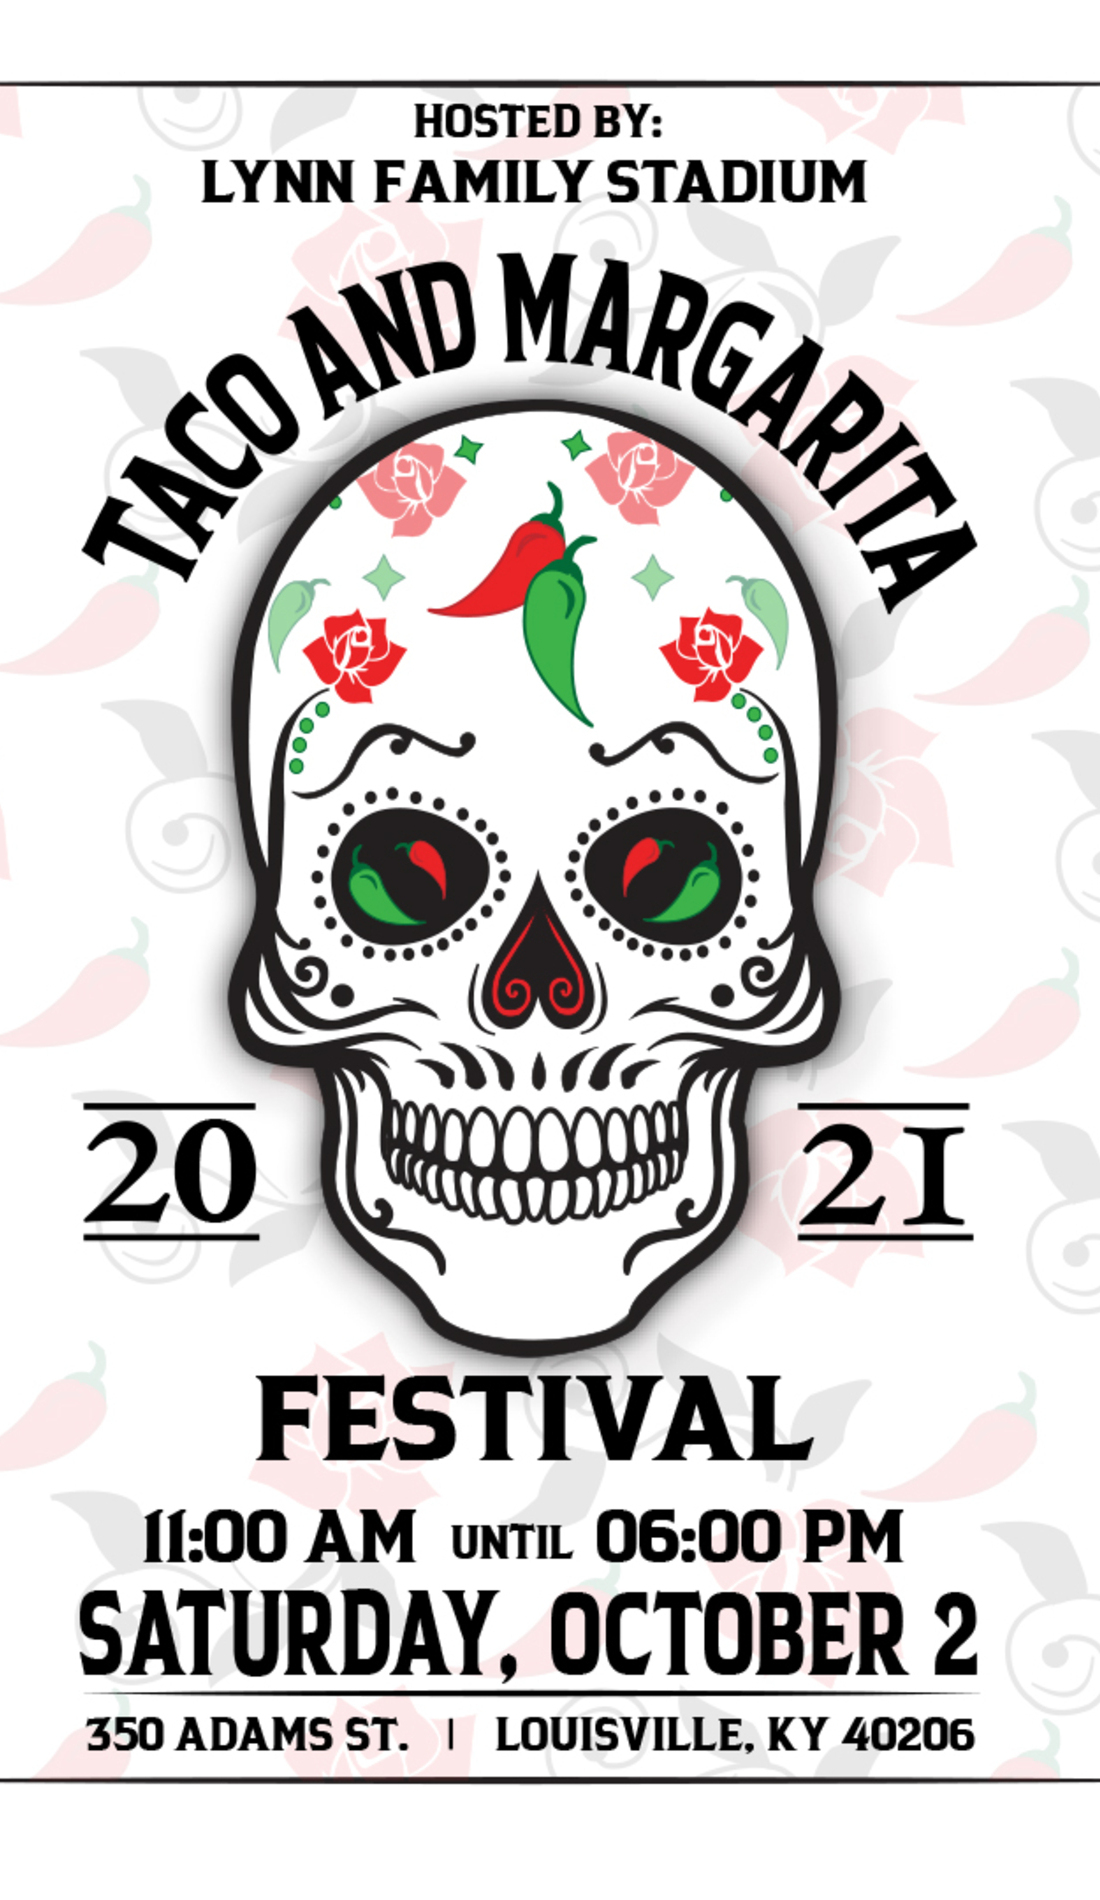 A Taco and Margaritas Fest live event